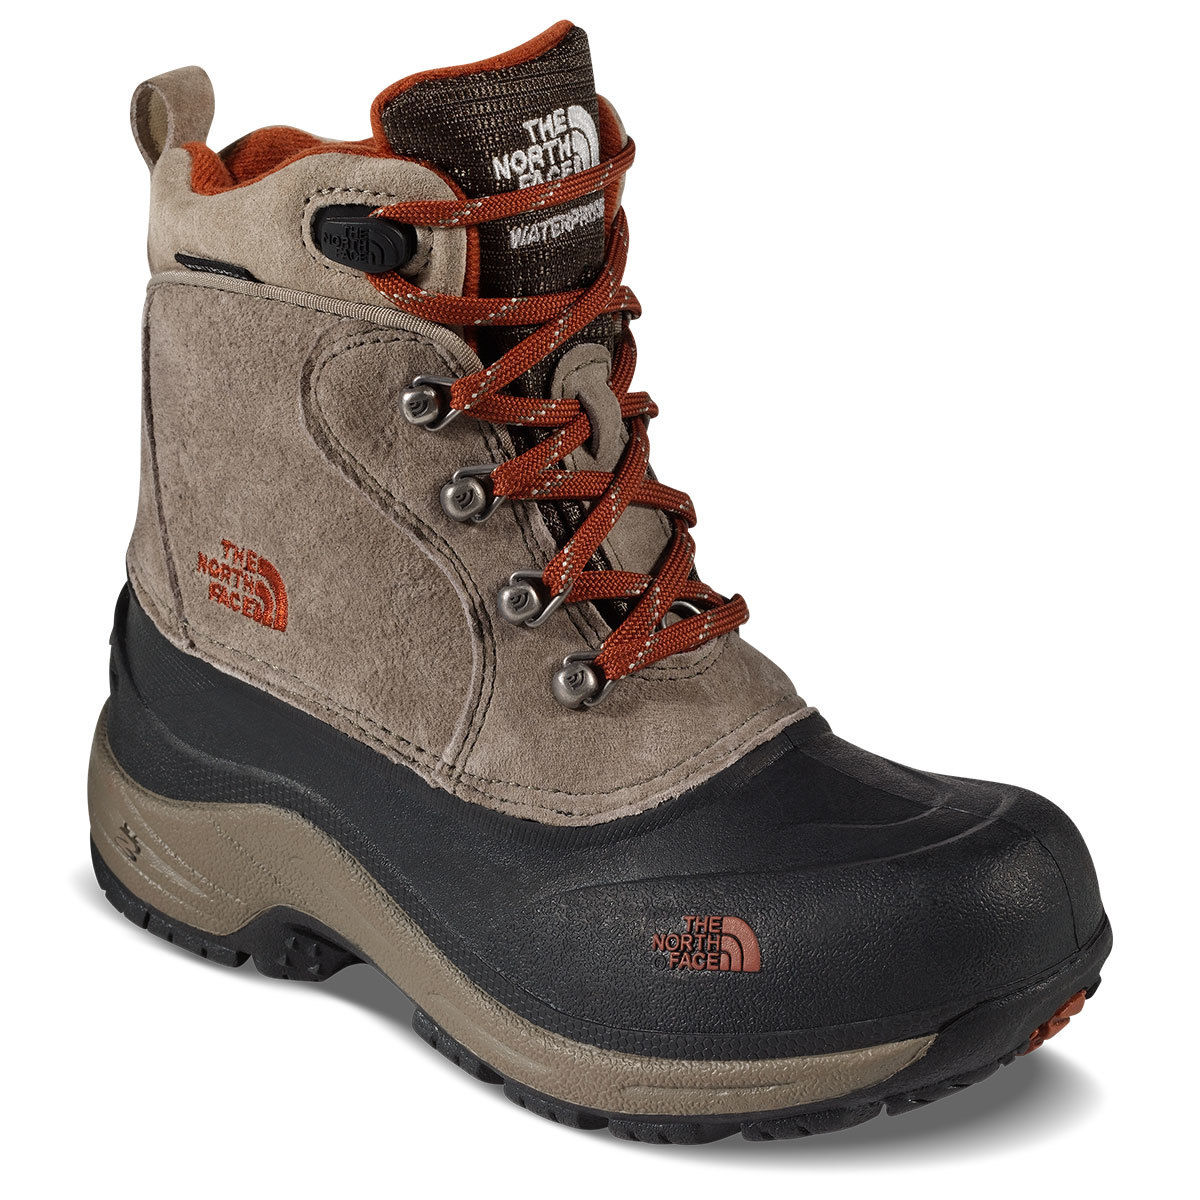 The North Face Boys' Chilkat Lace Ii Waterproof Winter Boots, Mudpack Brown/sienna Orange